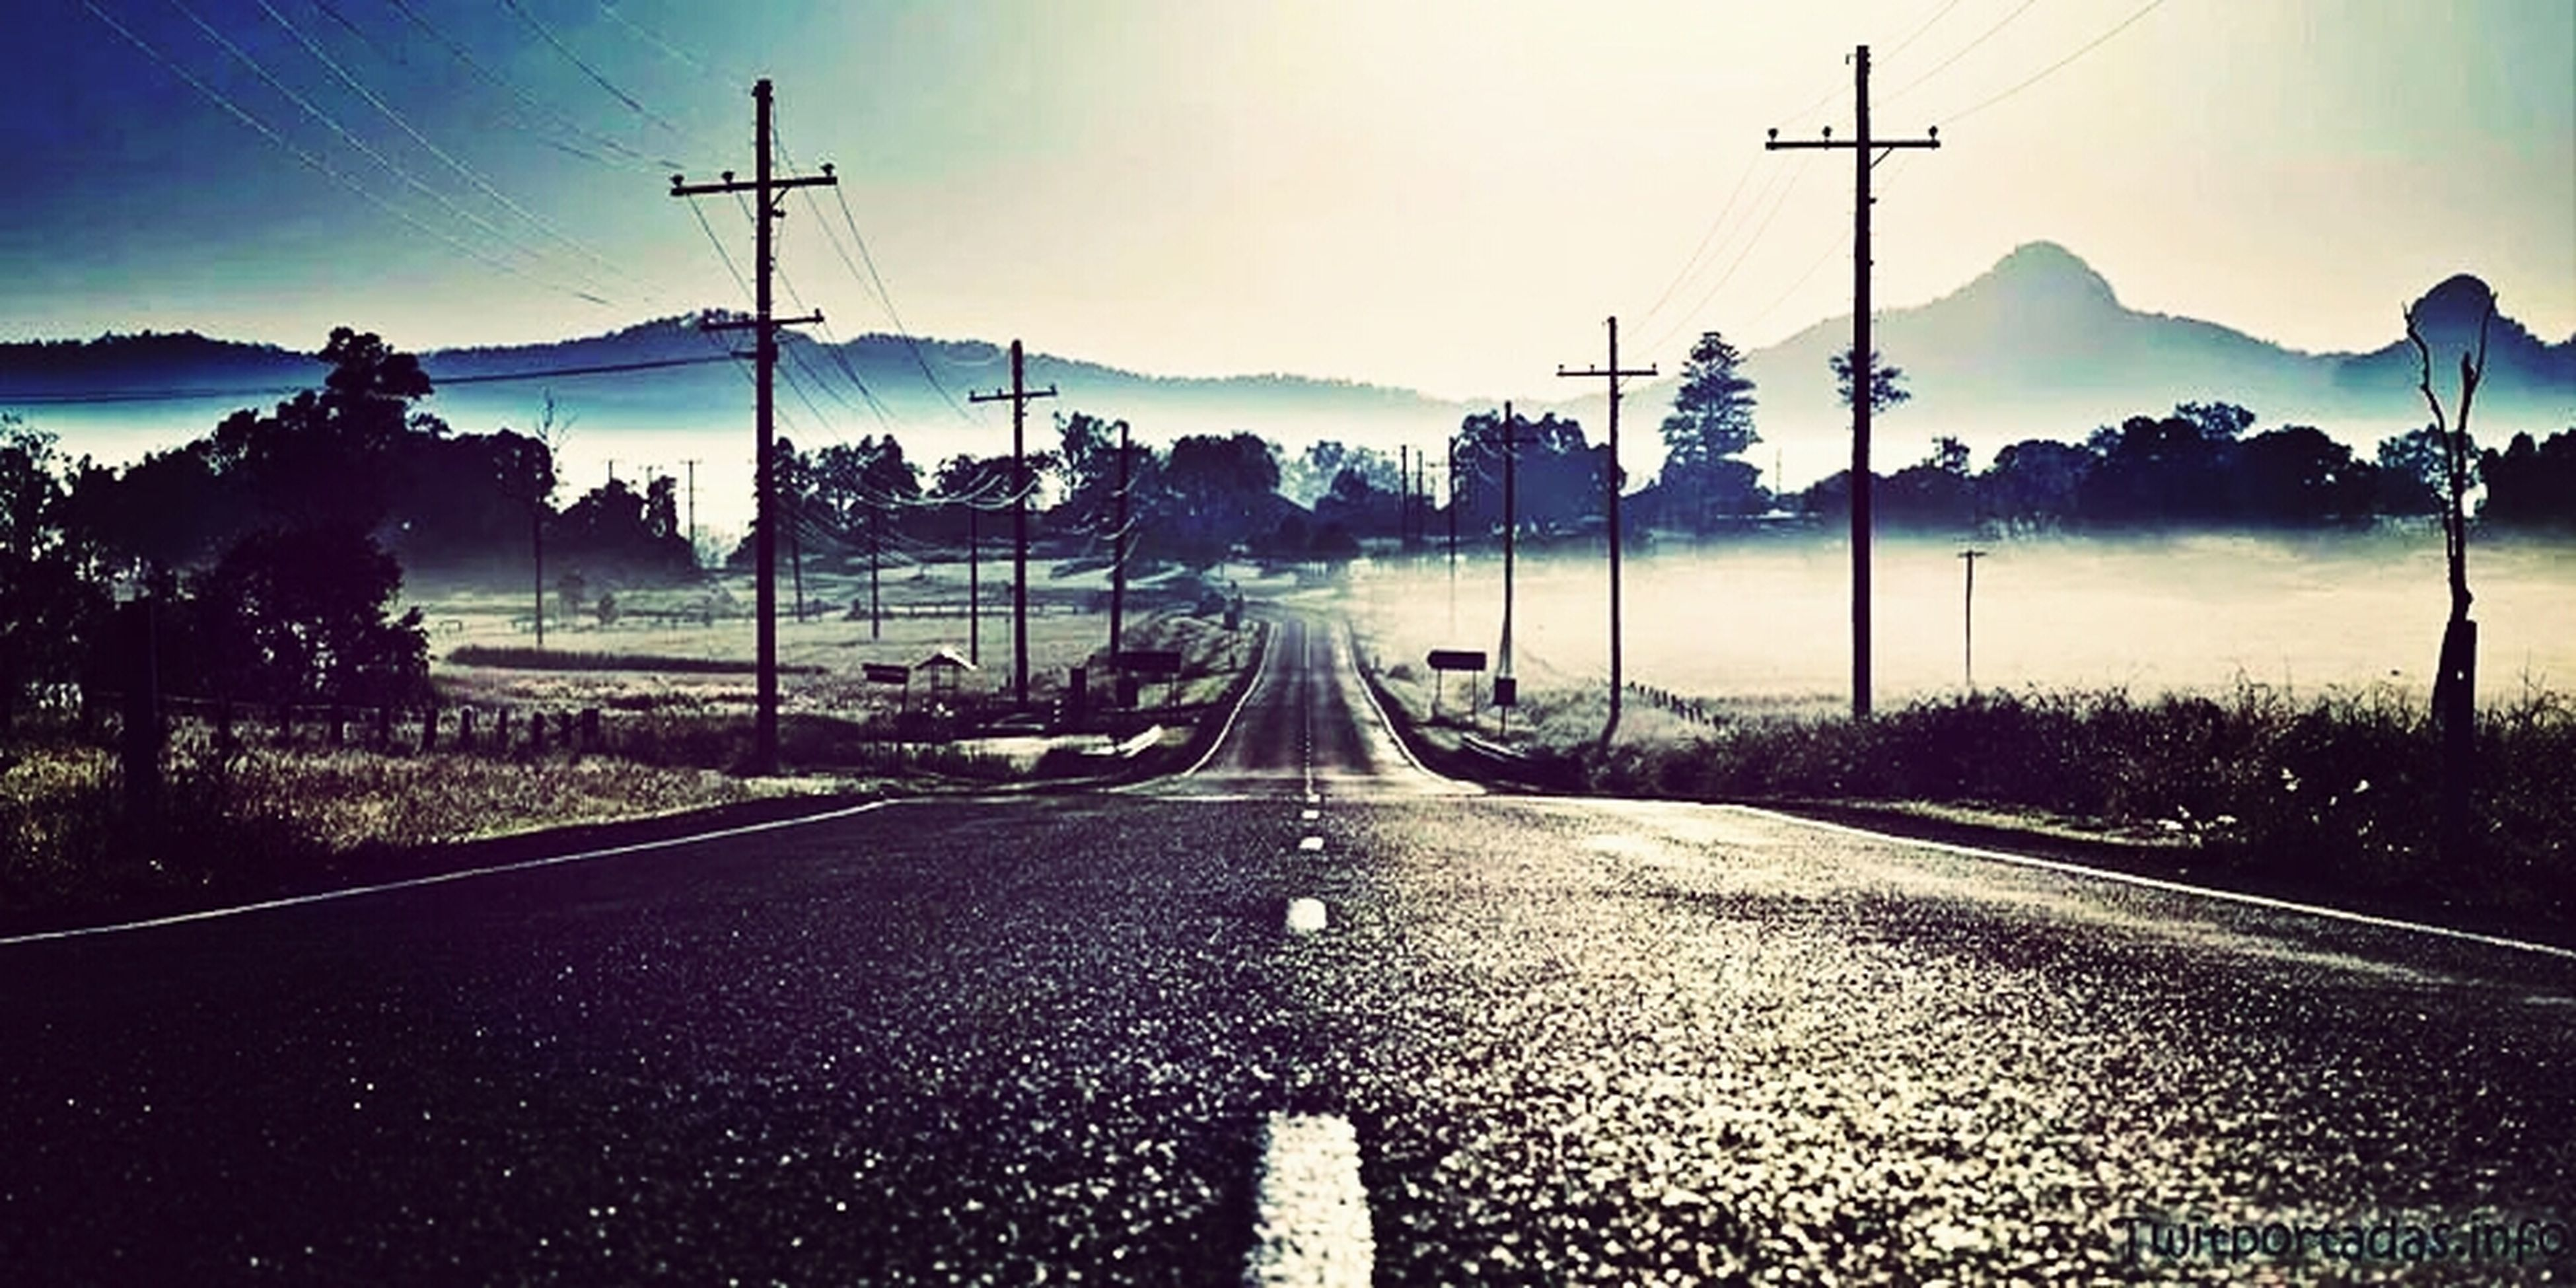 transportation, electricity pylon, the way forward, road, power line, diminishing perspective, mountain, electricity, sky, vanishing point, country road, power supply, landscape, cable, empty road, road marking, fuel and power generation, tree, mountain range, clear sky